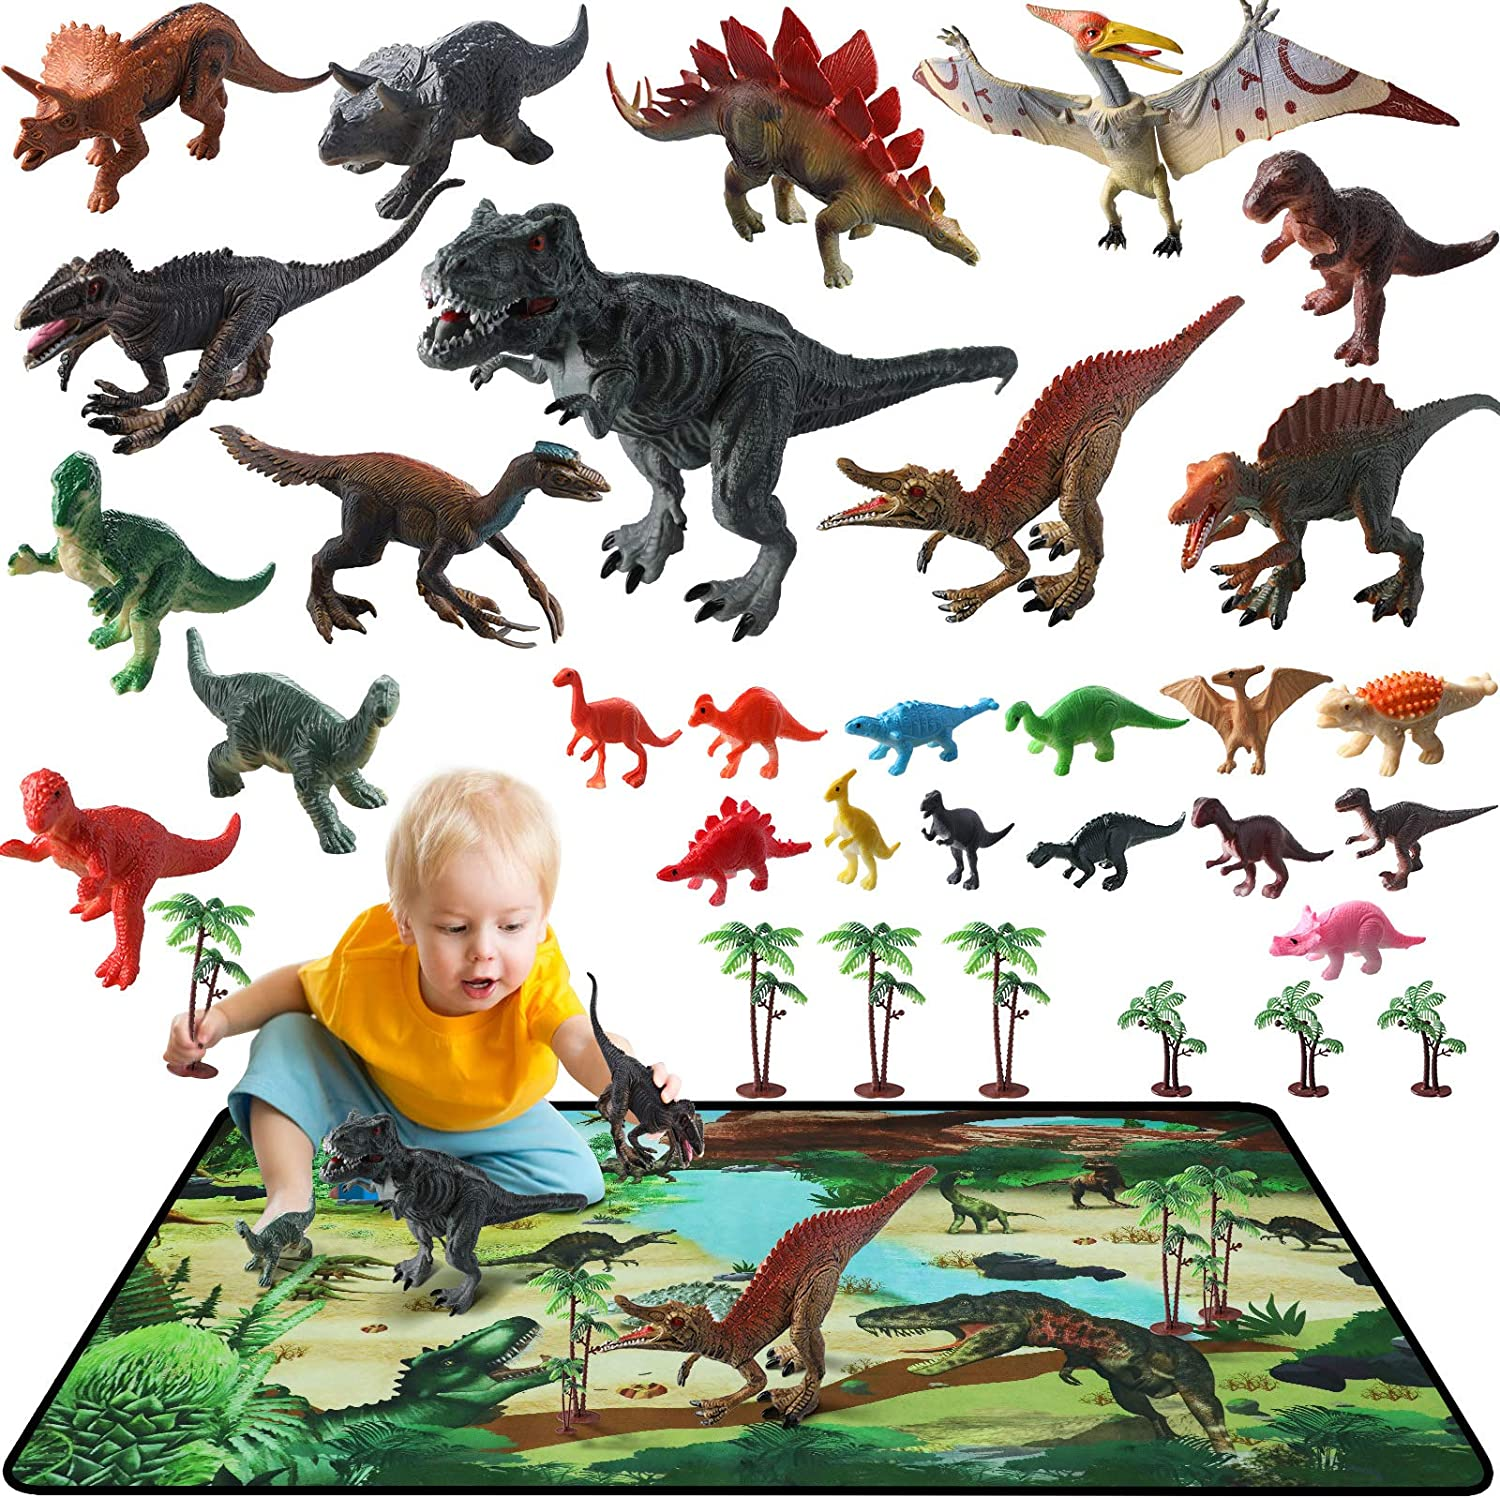 Dinosaur Toys 34 quality assurance PCS online shopping 26 with Activity Figures Realistic